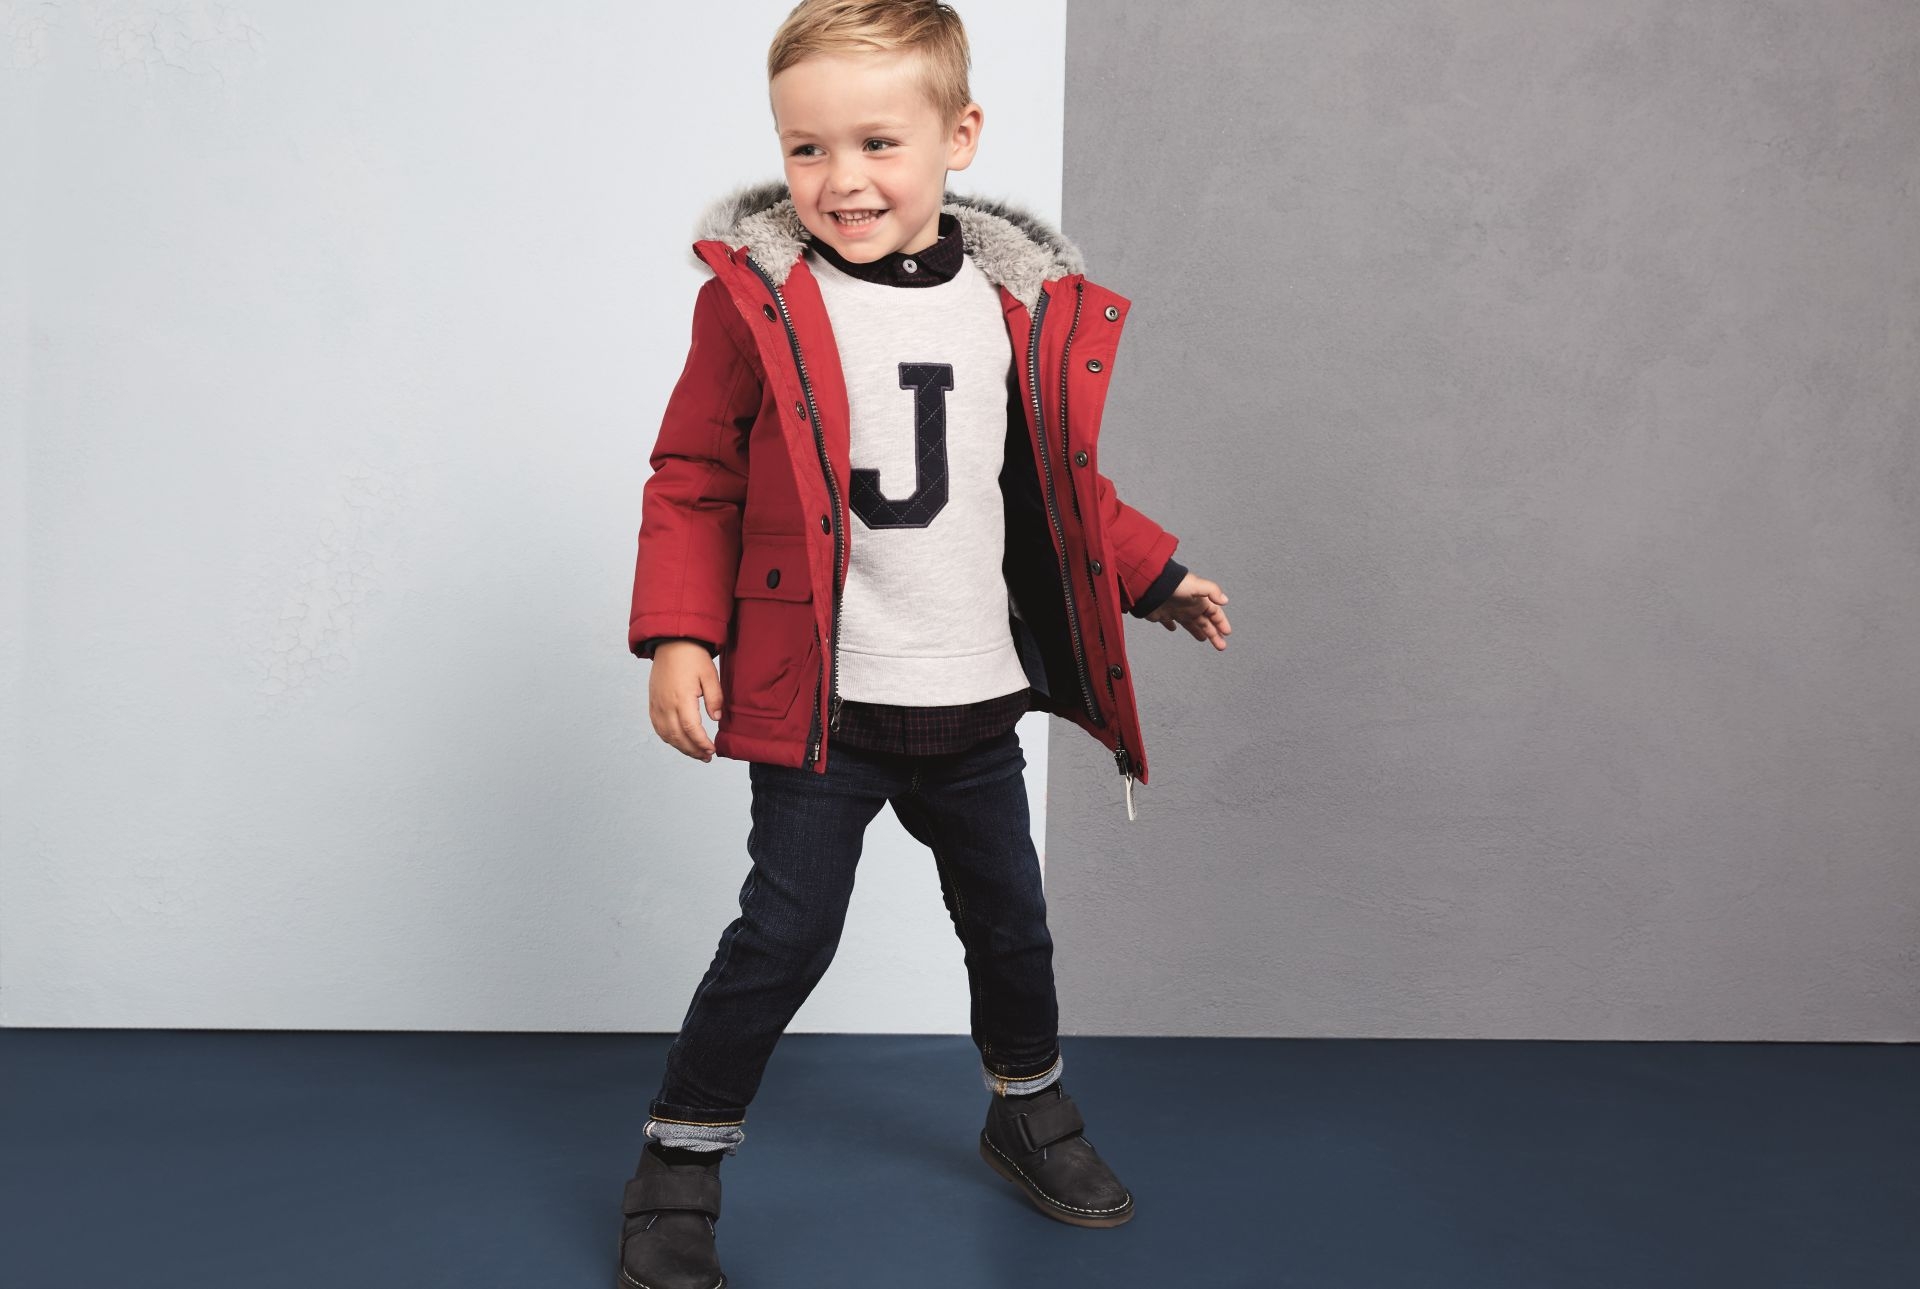 A boy in a J by Jasper Conran outfit